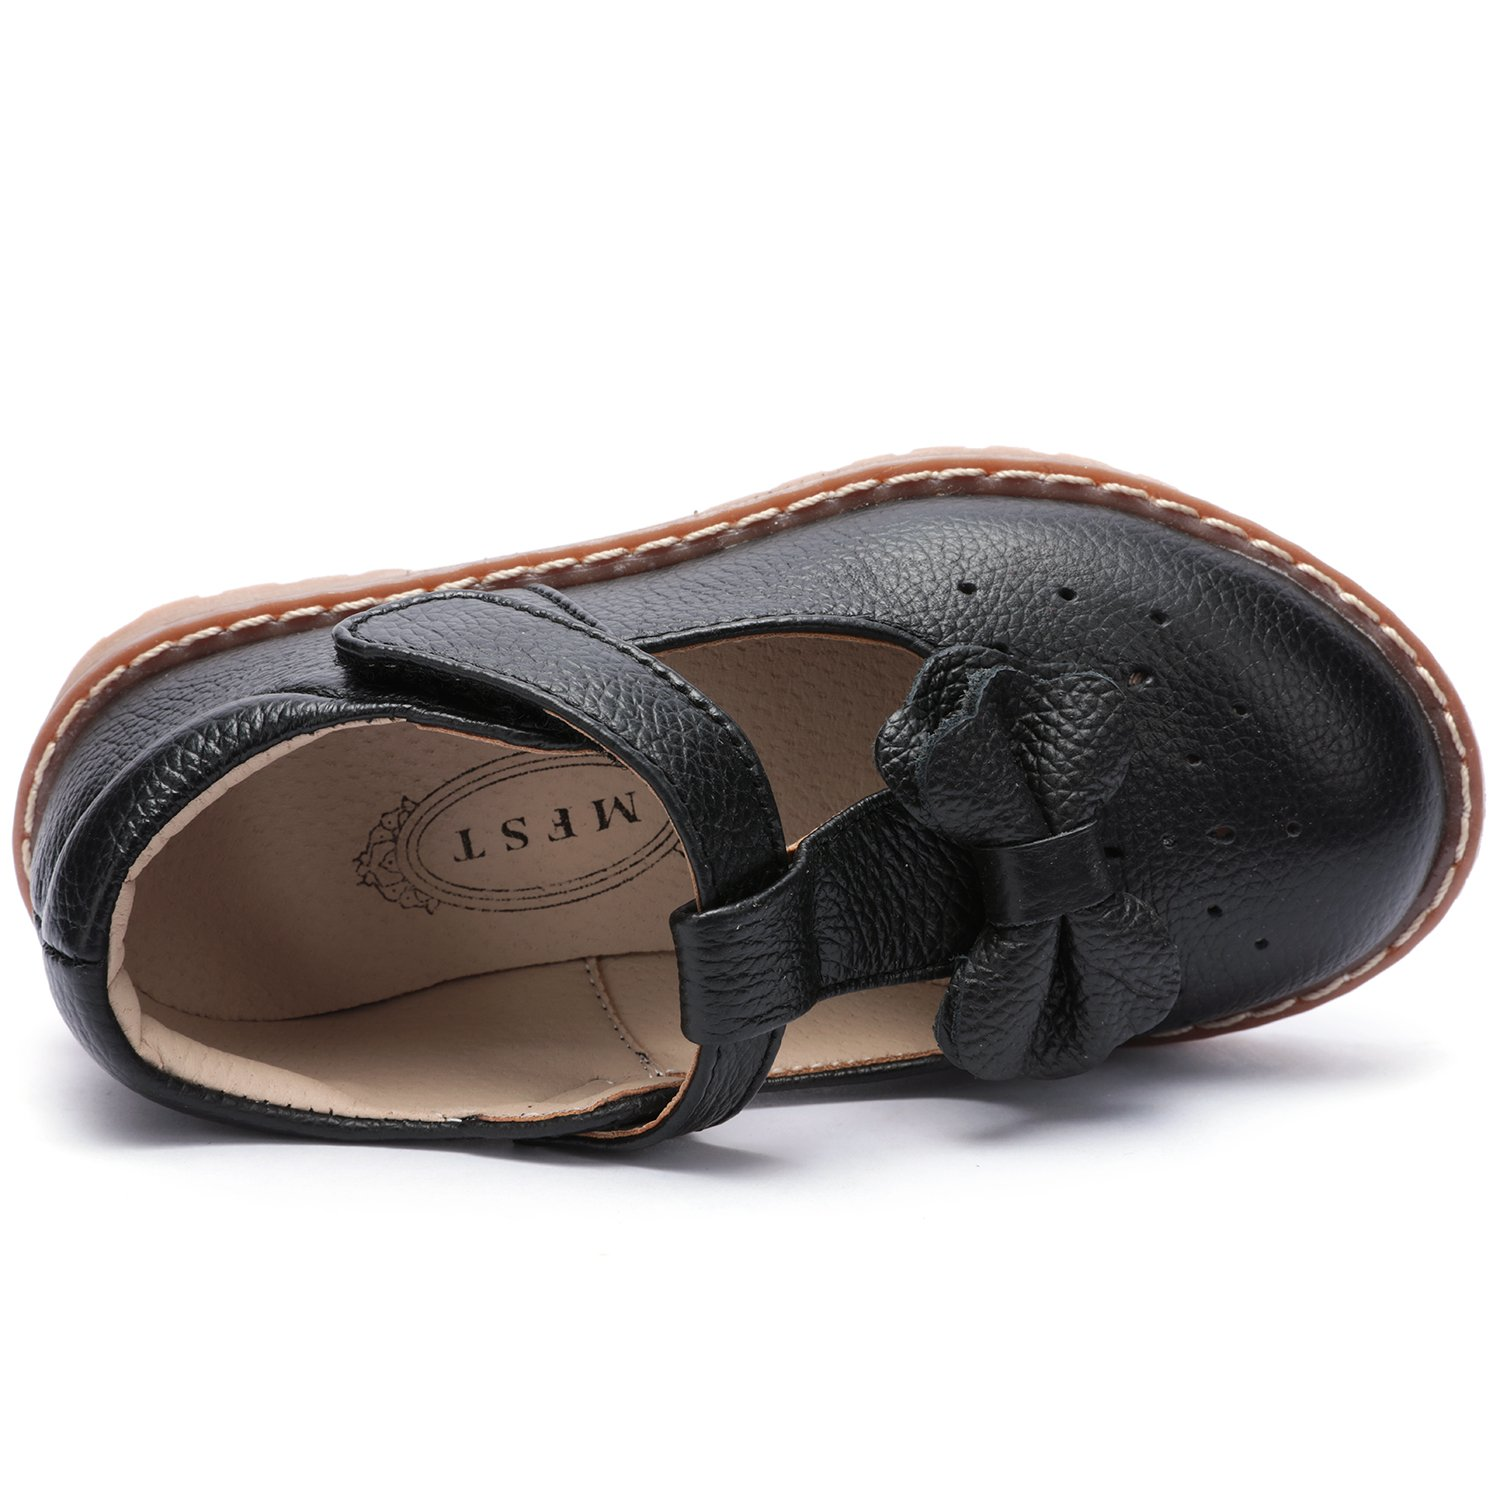 UBELLA Kids Toddler Girl's Retro T-Bar Princess Dress Shoes Leather Strap Mary Jane Flat Oxford Shoes by UBELLA (Image #3)